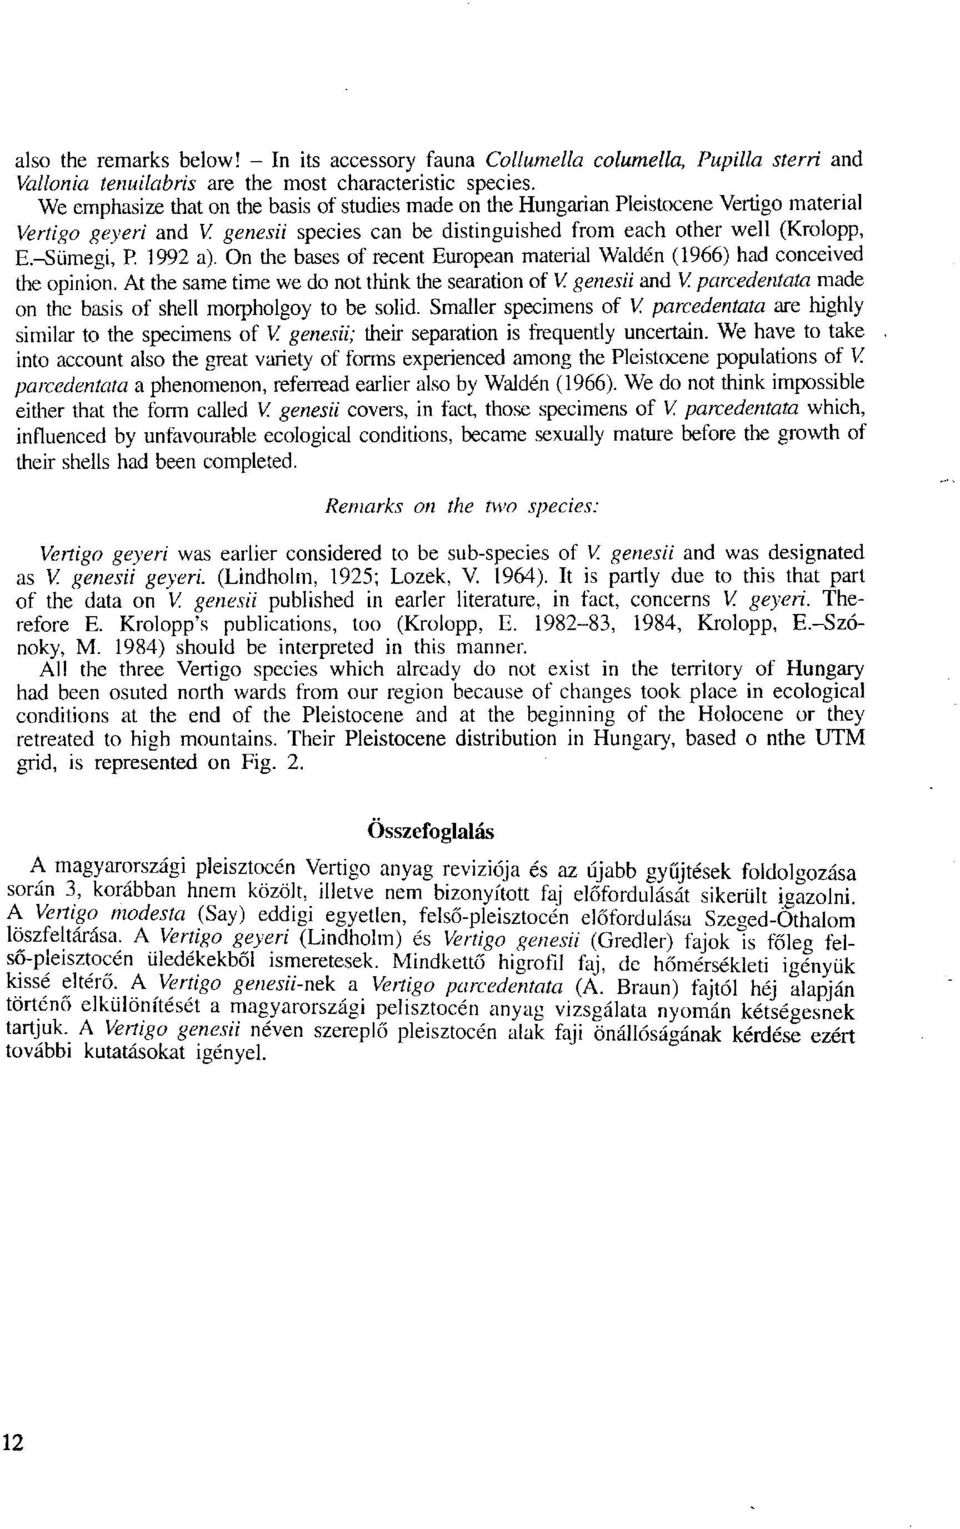 1992 a). On the bases of recent European material Waiden (1966) had conceived the opinion. At the same time we do not think the searation of V. genesii and V.